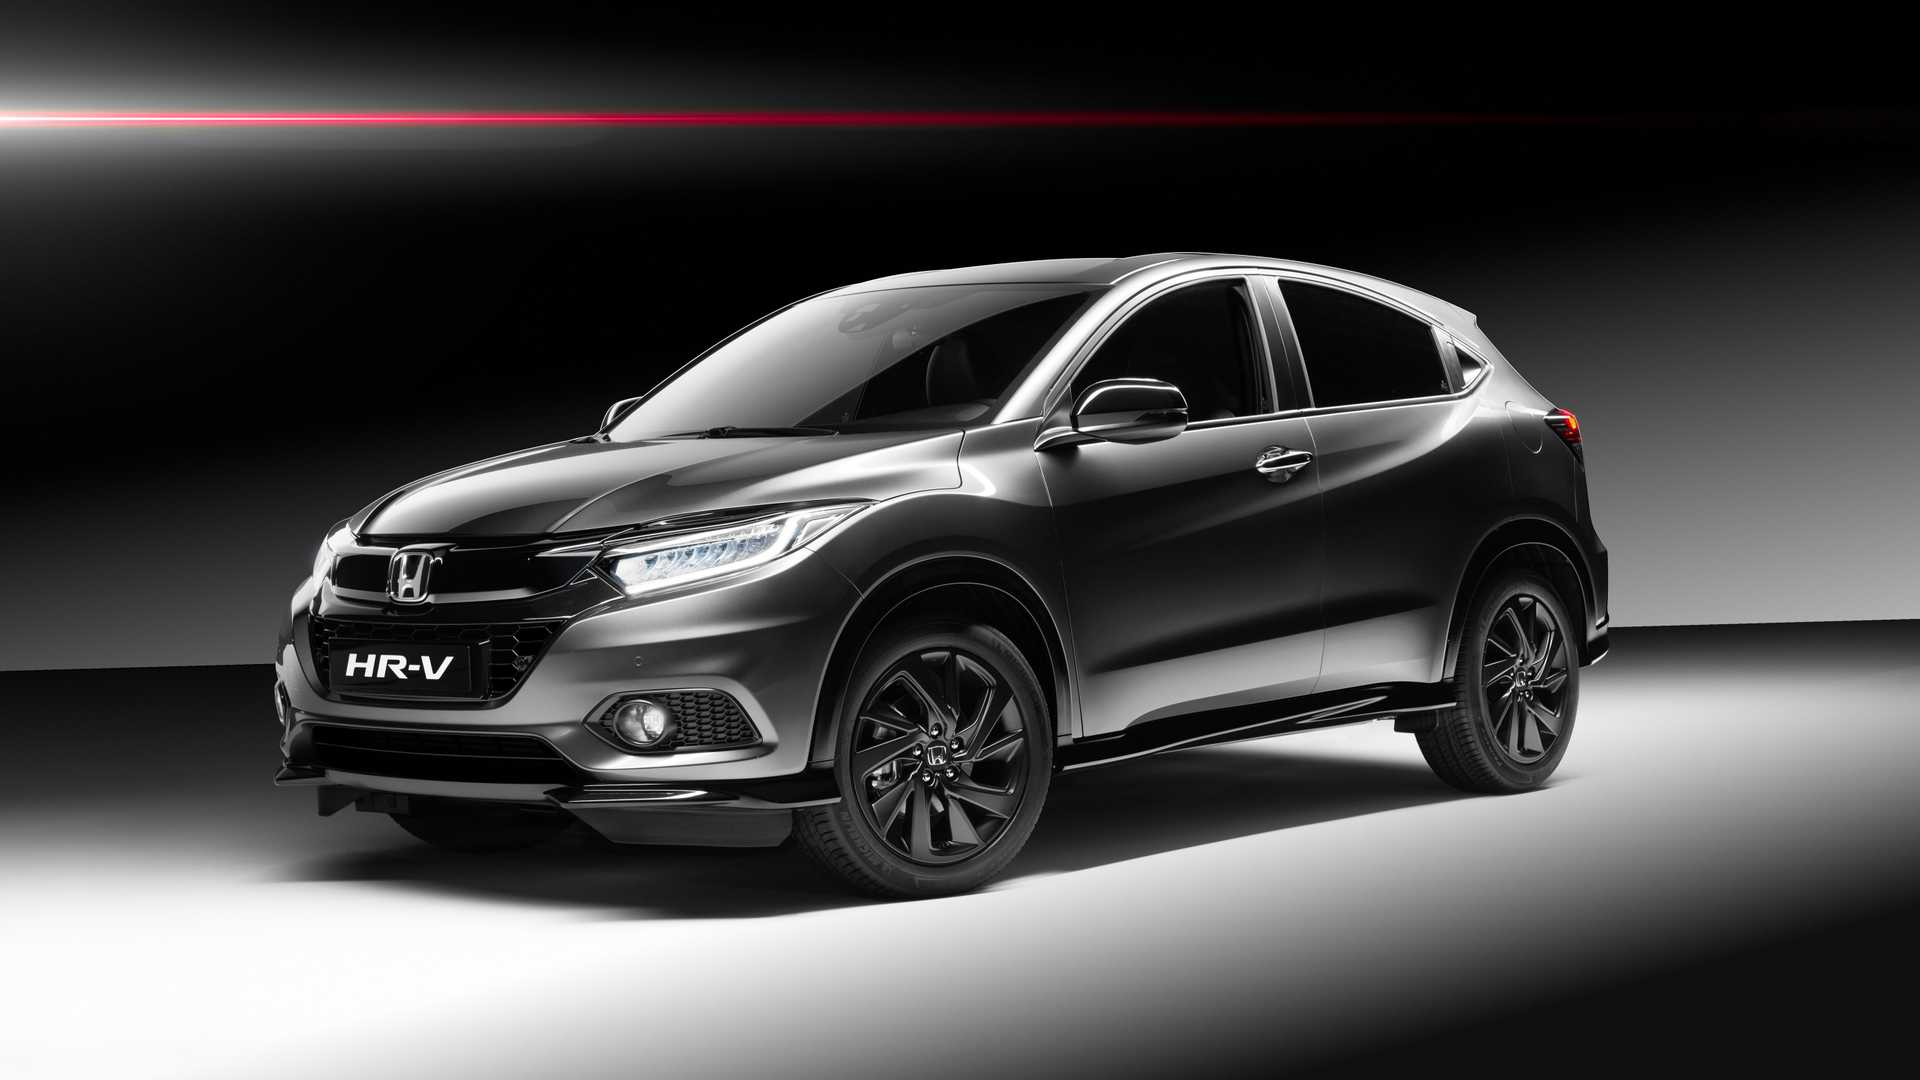 47 Great The Honda 2019 Hrv Price Spy Shoot Concept with The Honda 2019 Hrv Price Spy Shoot